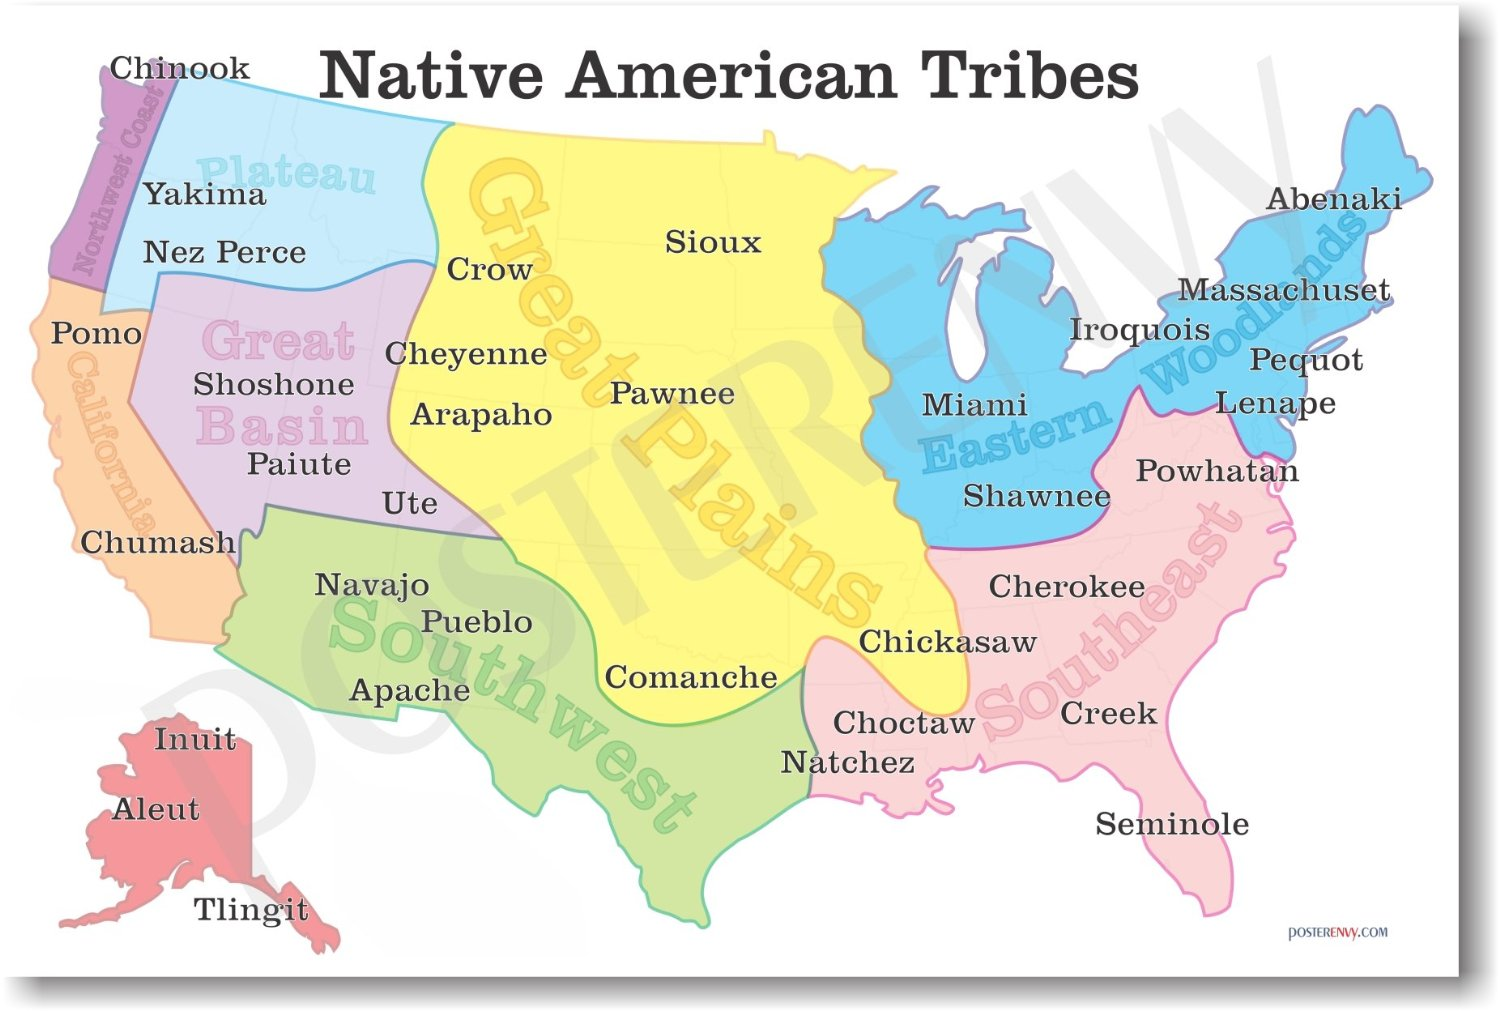 the history of the settlement of the navajo tribe in the united states of america The navajo tribe is one of the largest native american tribes in the united states with over 250,000 members living in its reservation area the navajo reservation is approximately 27,000 square miles and extends into four states.